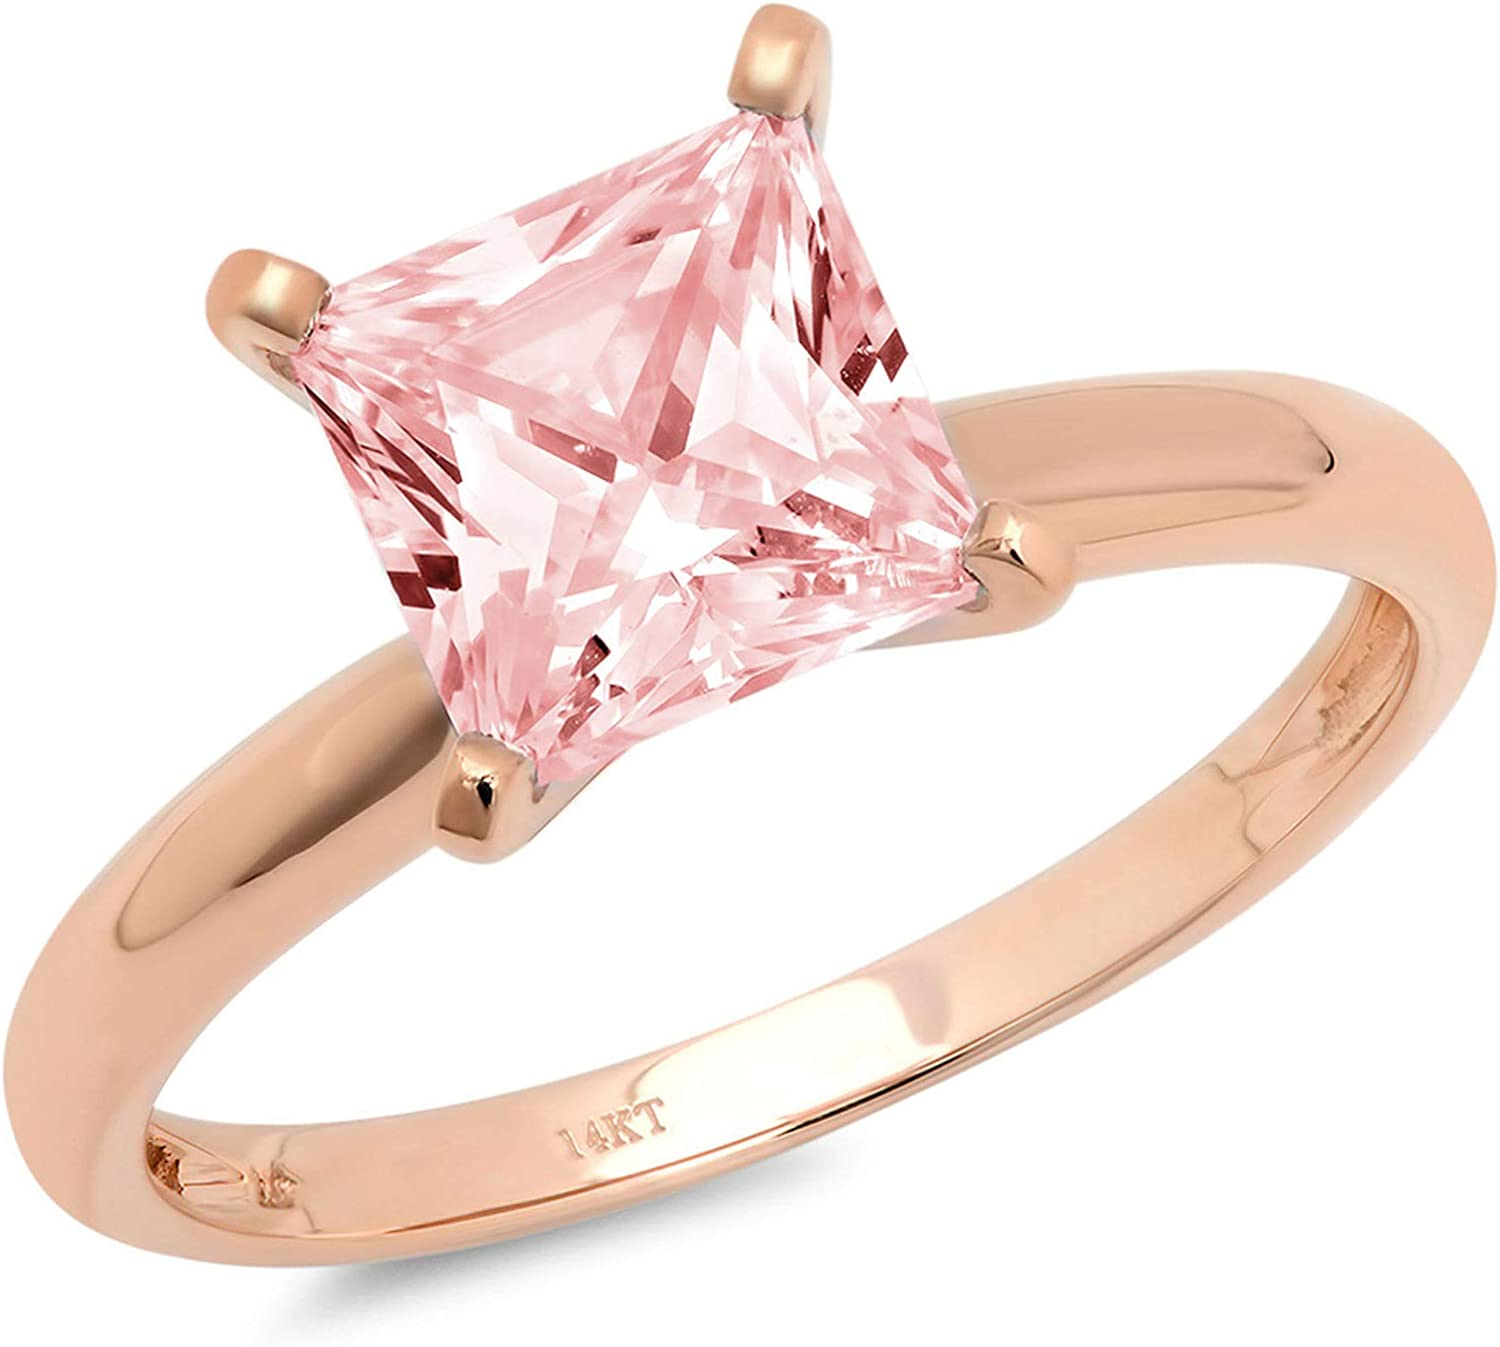 0.4ct Brilliant Princess Cut Solitaire Pink Simulated Diamond Cubic Zirconia Ideal VVS1 D 4-Prong Engagement Wedding Bridal Promise Anniversary Ring in Solid 14k Rose Gold for Women